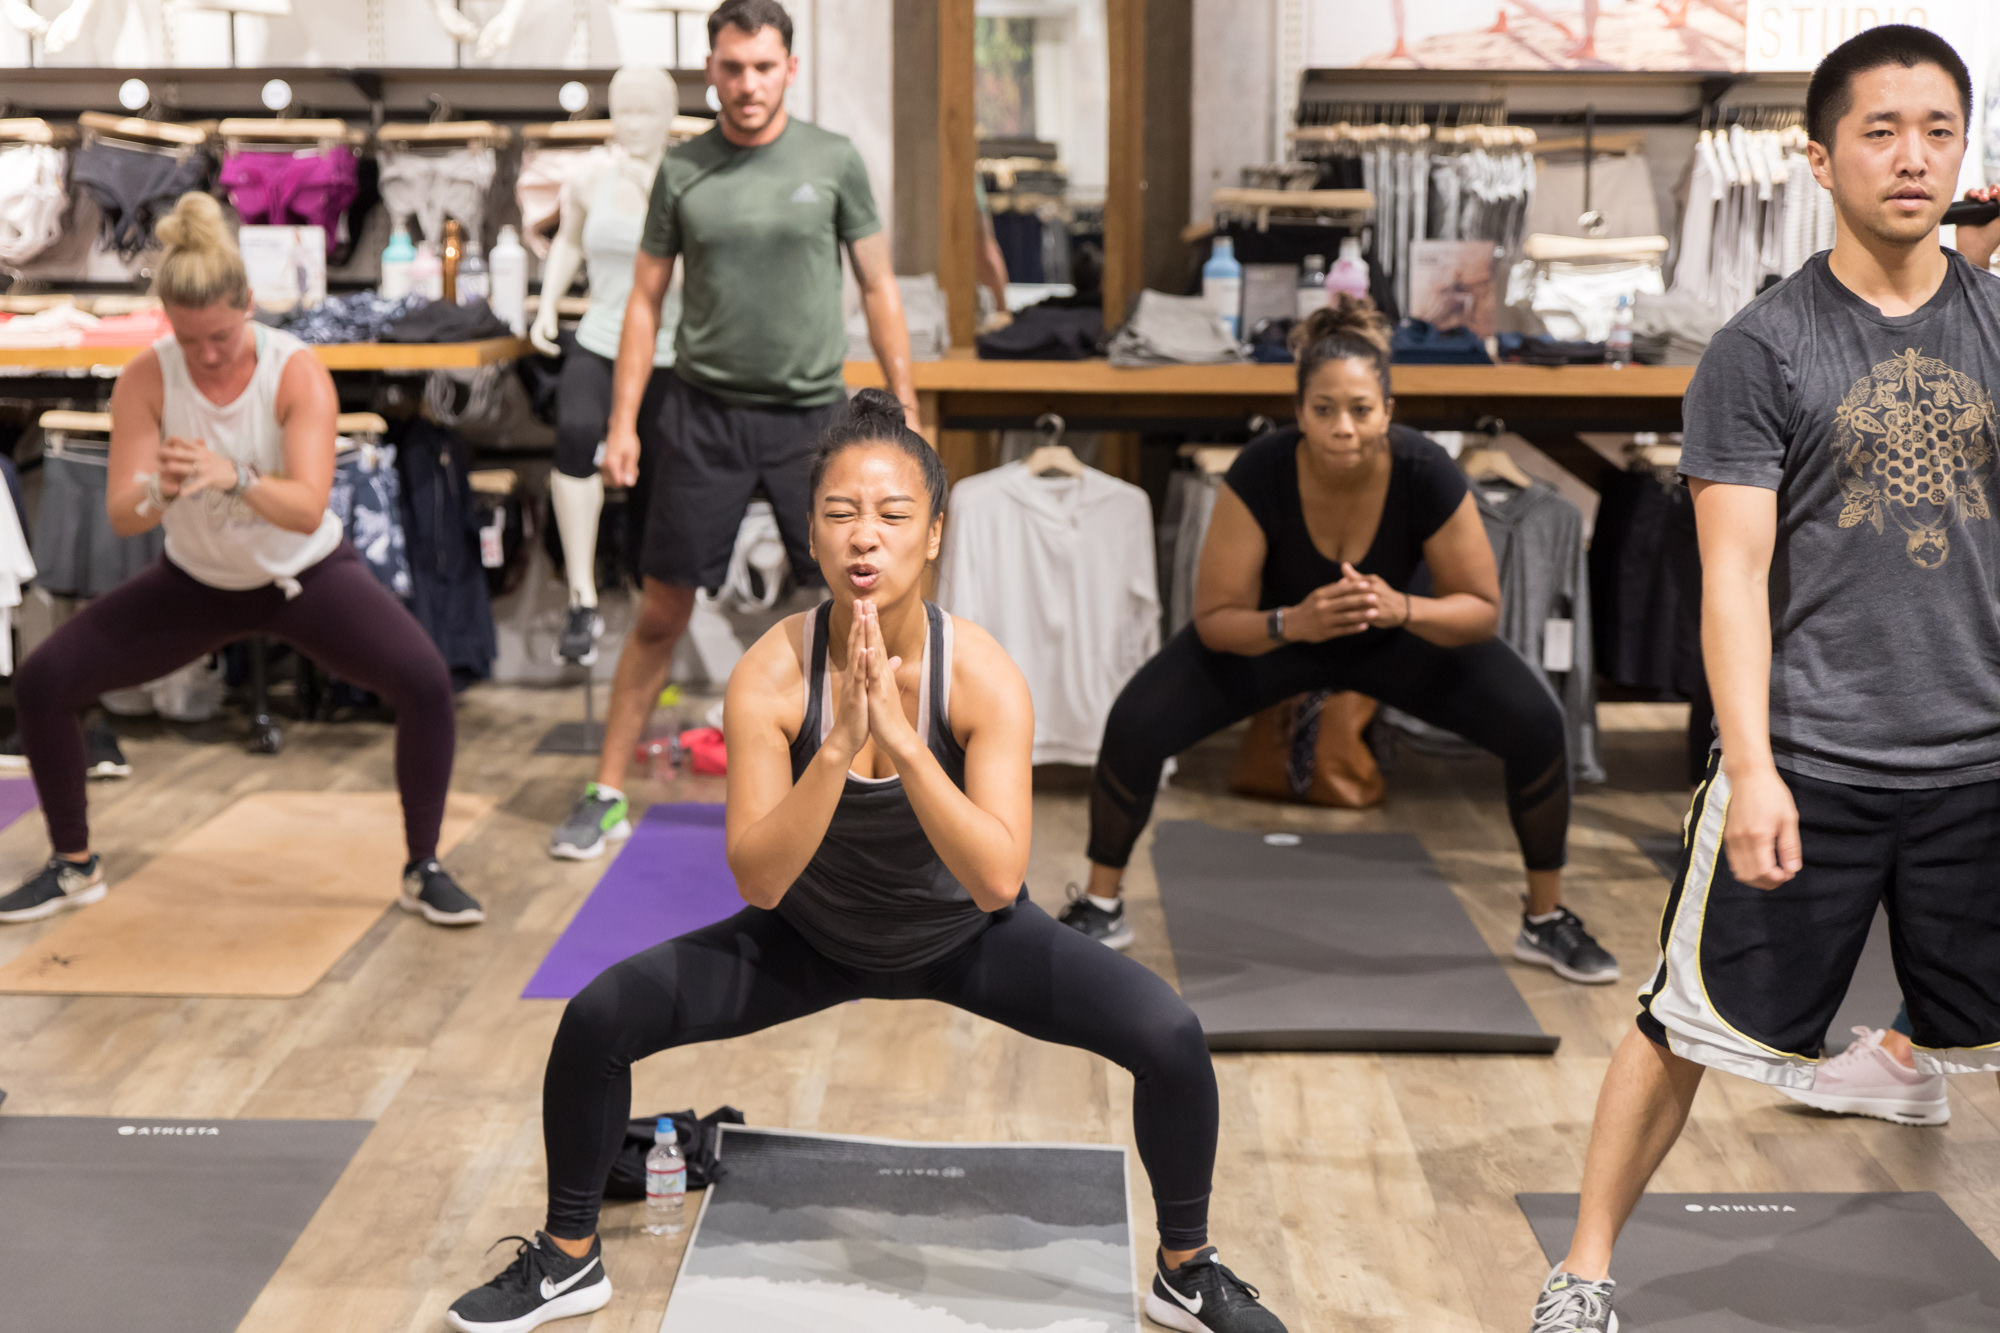 strained-face-attendee-doing-squats-during-group-fitness-workout-pop-up-athleta-san-jose-valley-fair-mall.jpg